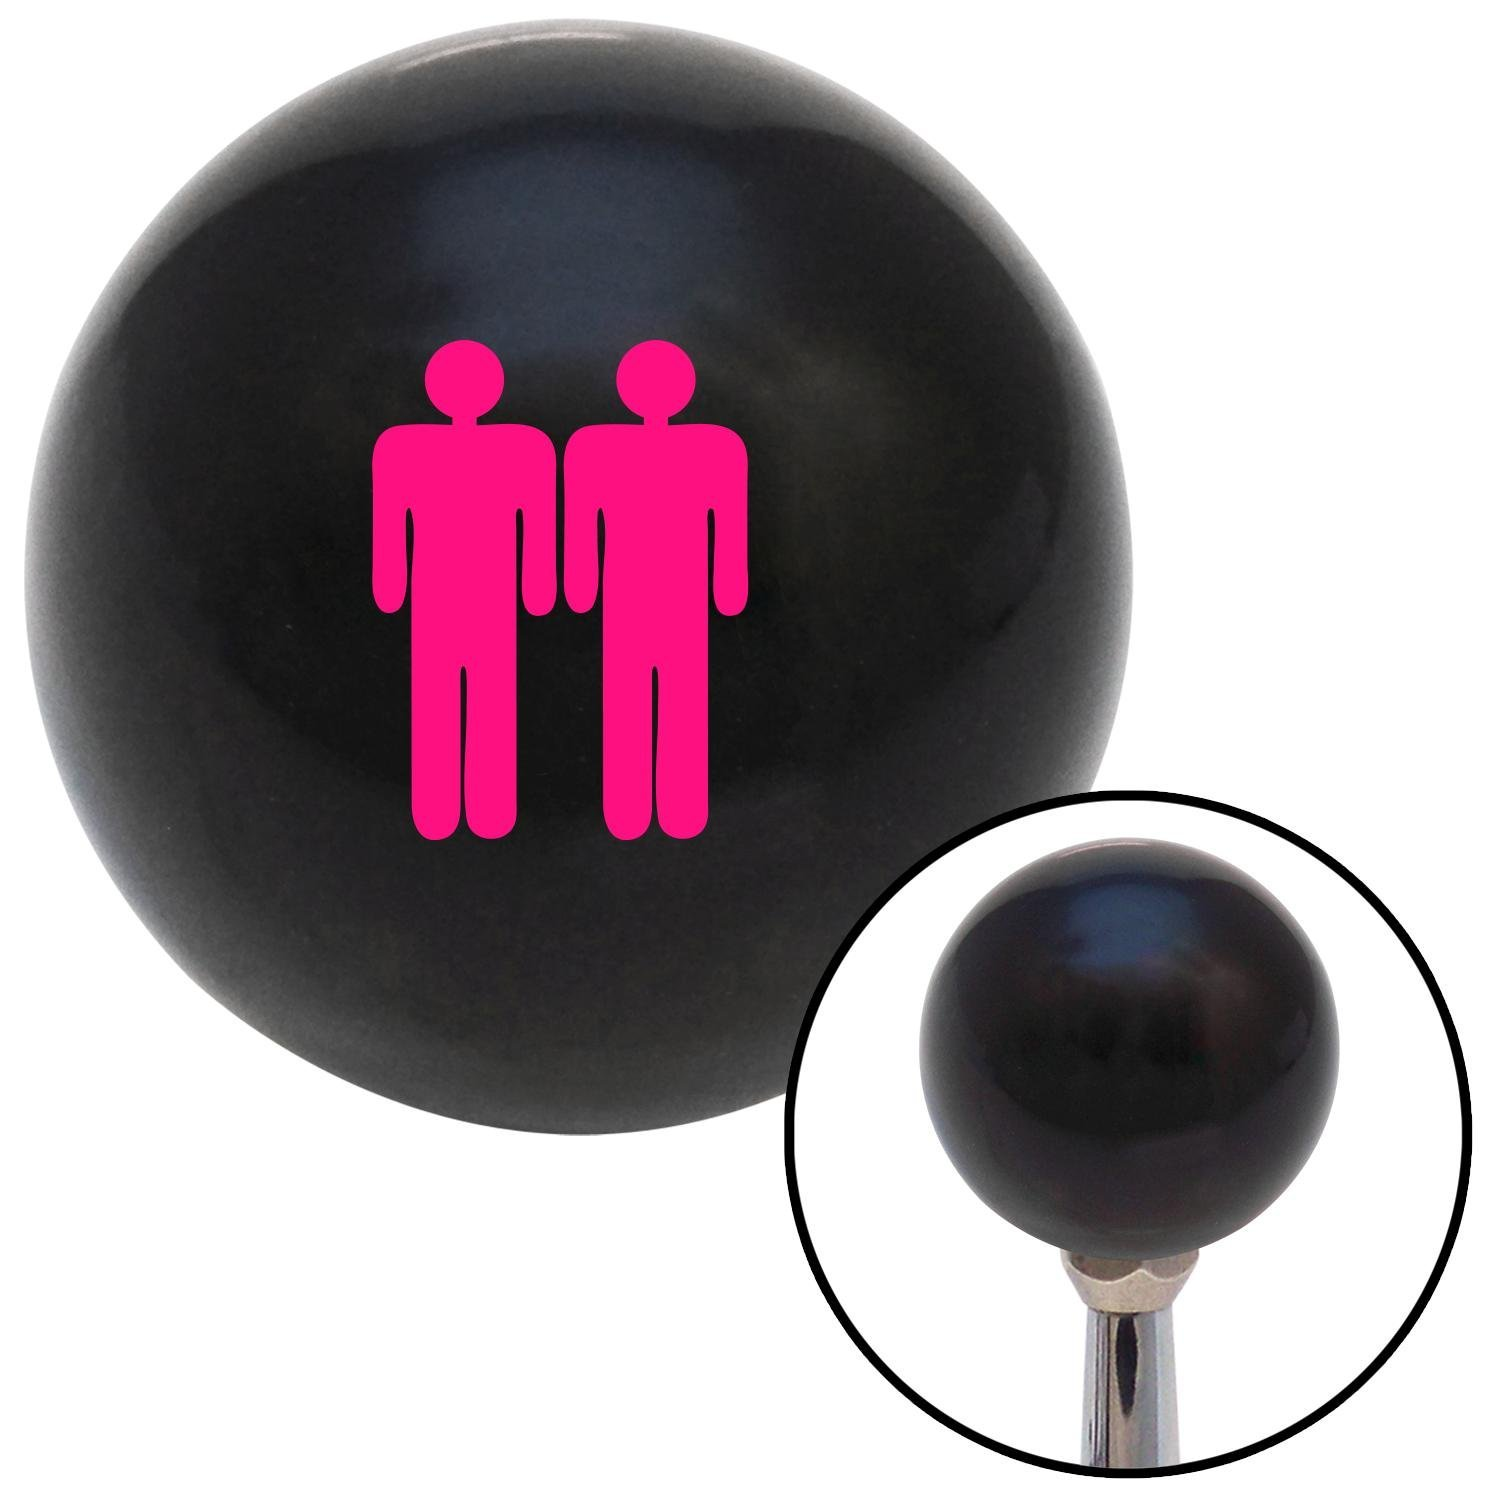 American Shifter 107802 Black Shift Knob with M16 x 1.5 Insert Pink Man Standing by Man